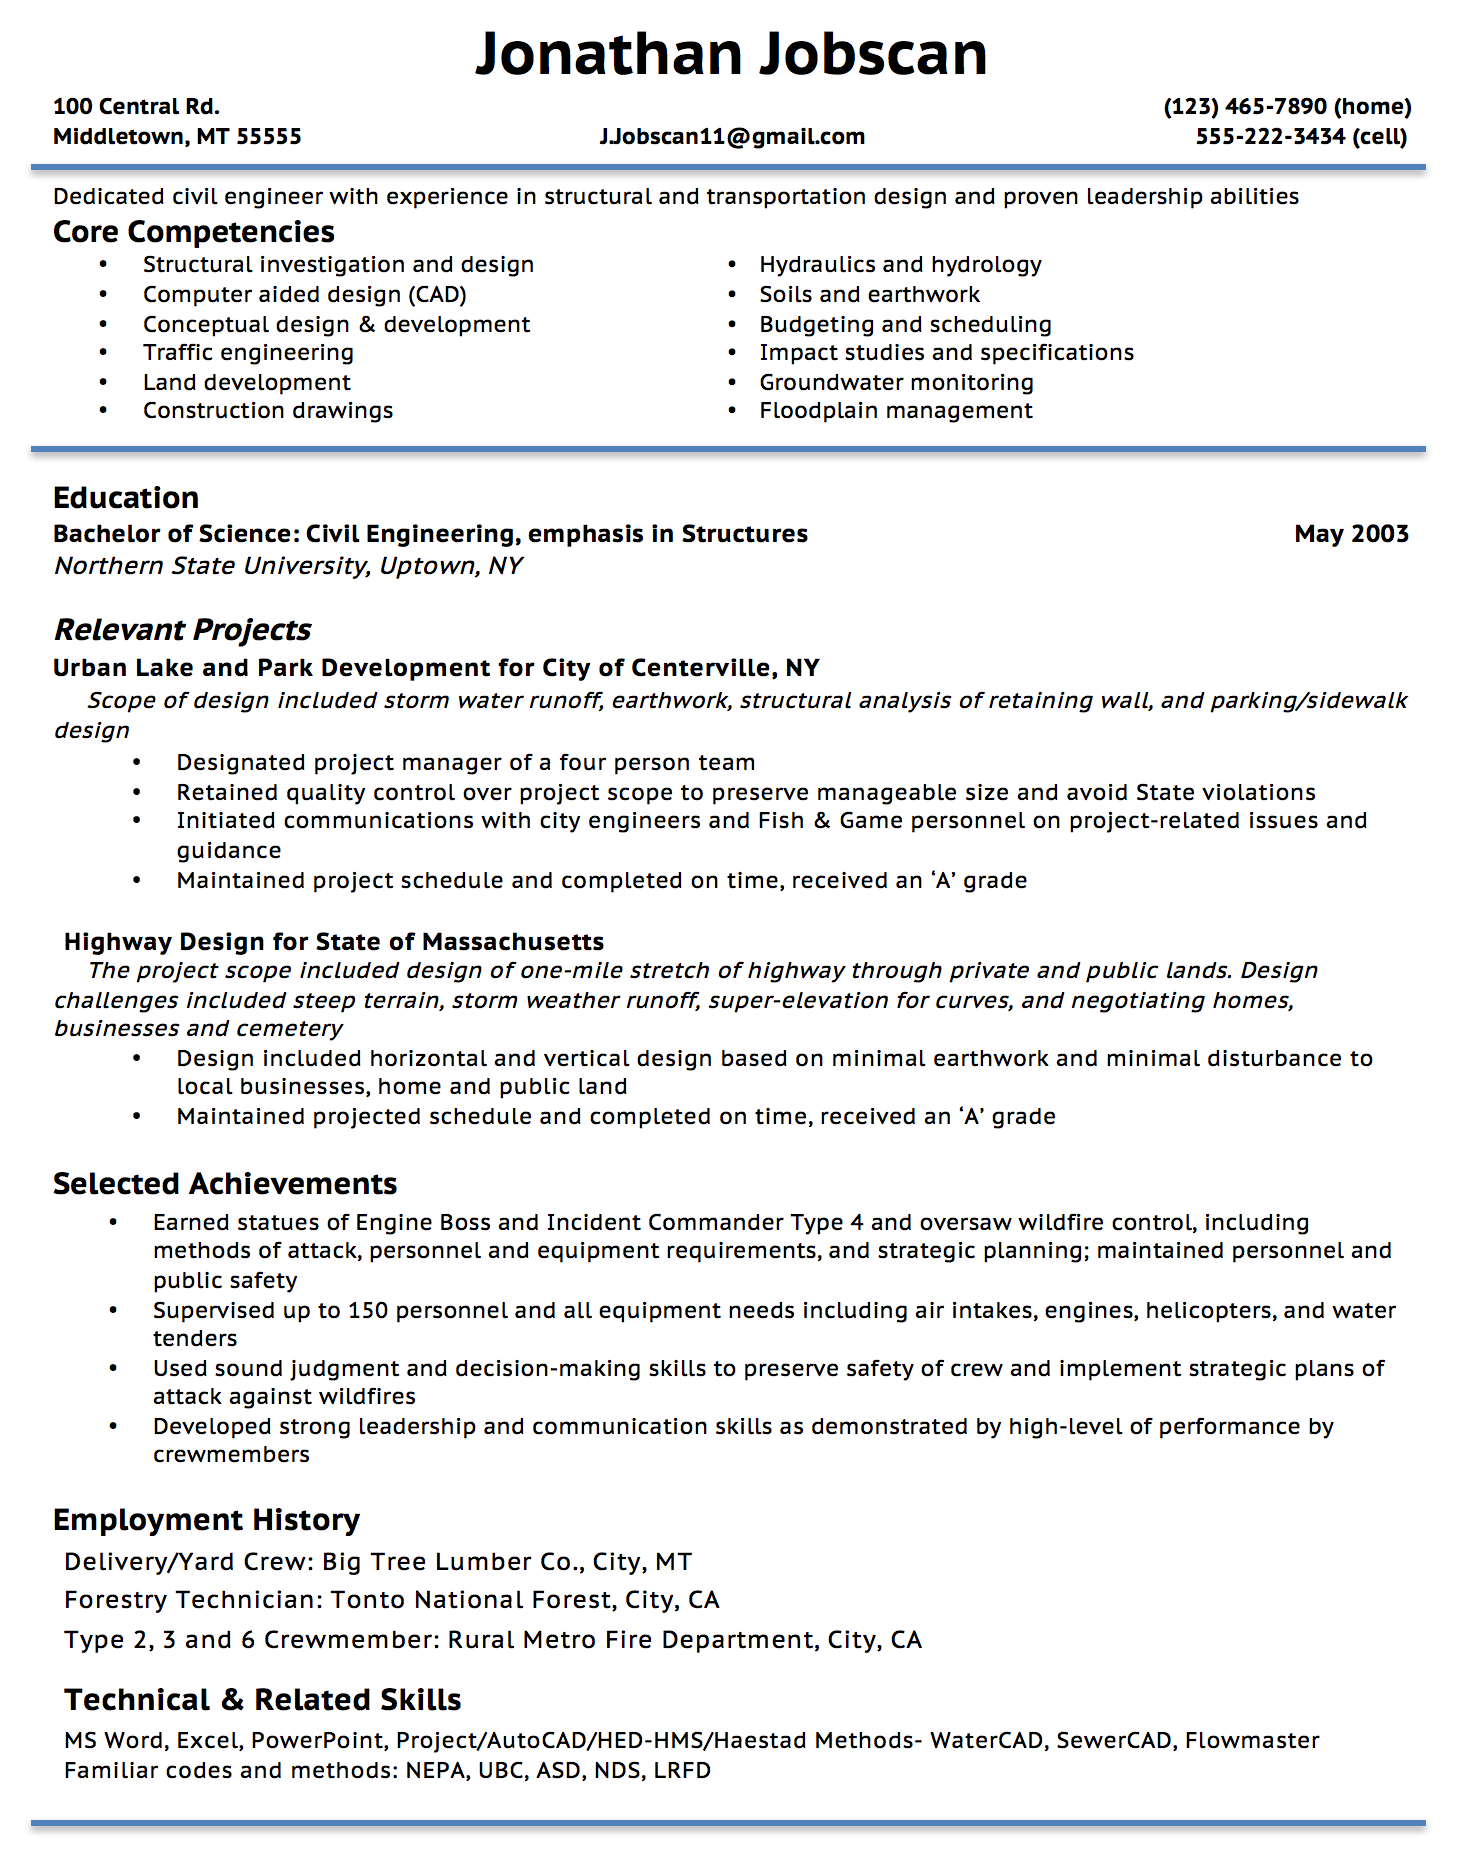 Opposenewapstandardsus  Winning Resume Writing Guide  Jobscan With Interesting Example Of A Functional Resume Format With Cute Football Coaching Resume Also Customer Service Sample Resumes In Addition Guest Services Resume And Entry Level It Resume With No Experience As Well As Resume Writing For Dummies Additionally Sample Hospitality Resume From Jobscanco With Opposenewapstandardsus  Interesting Resume Writing Guide  Jobscan With Cute Example Of A Functional Resume Format And Winning Football Coaching Resume Also Customer Service Sample Resumes In Addition Guest Services Resume From Jobscanco